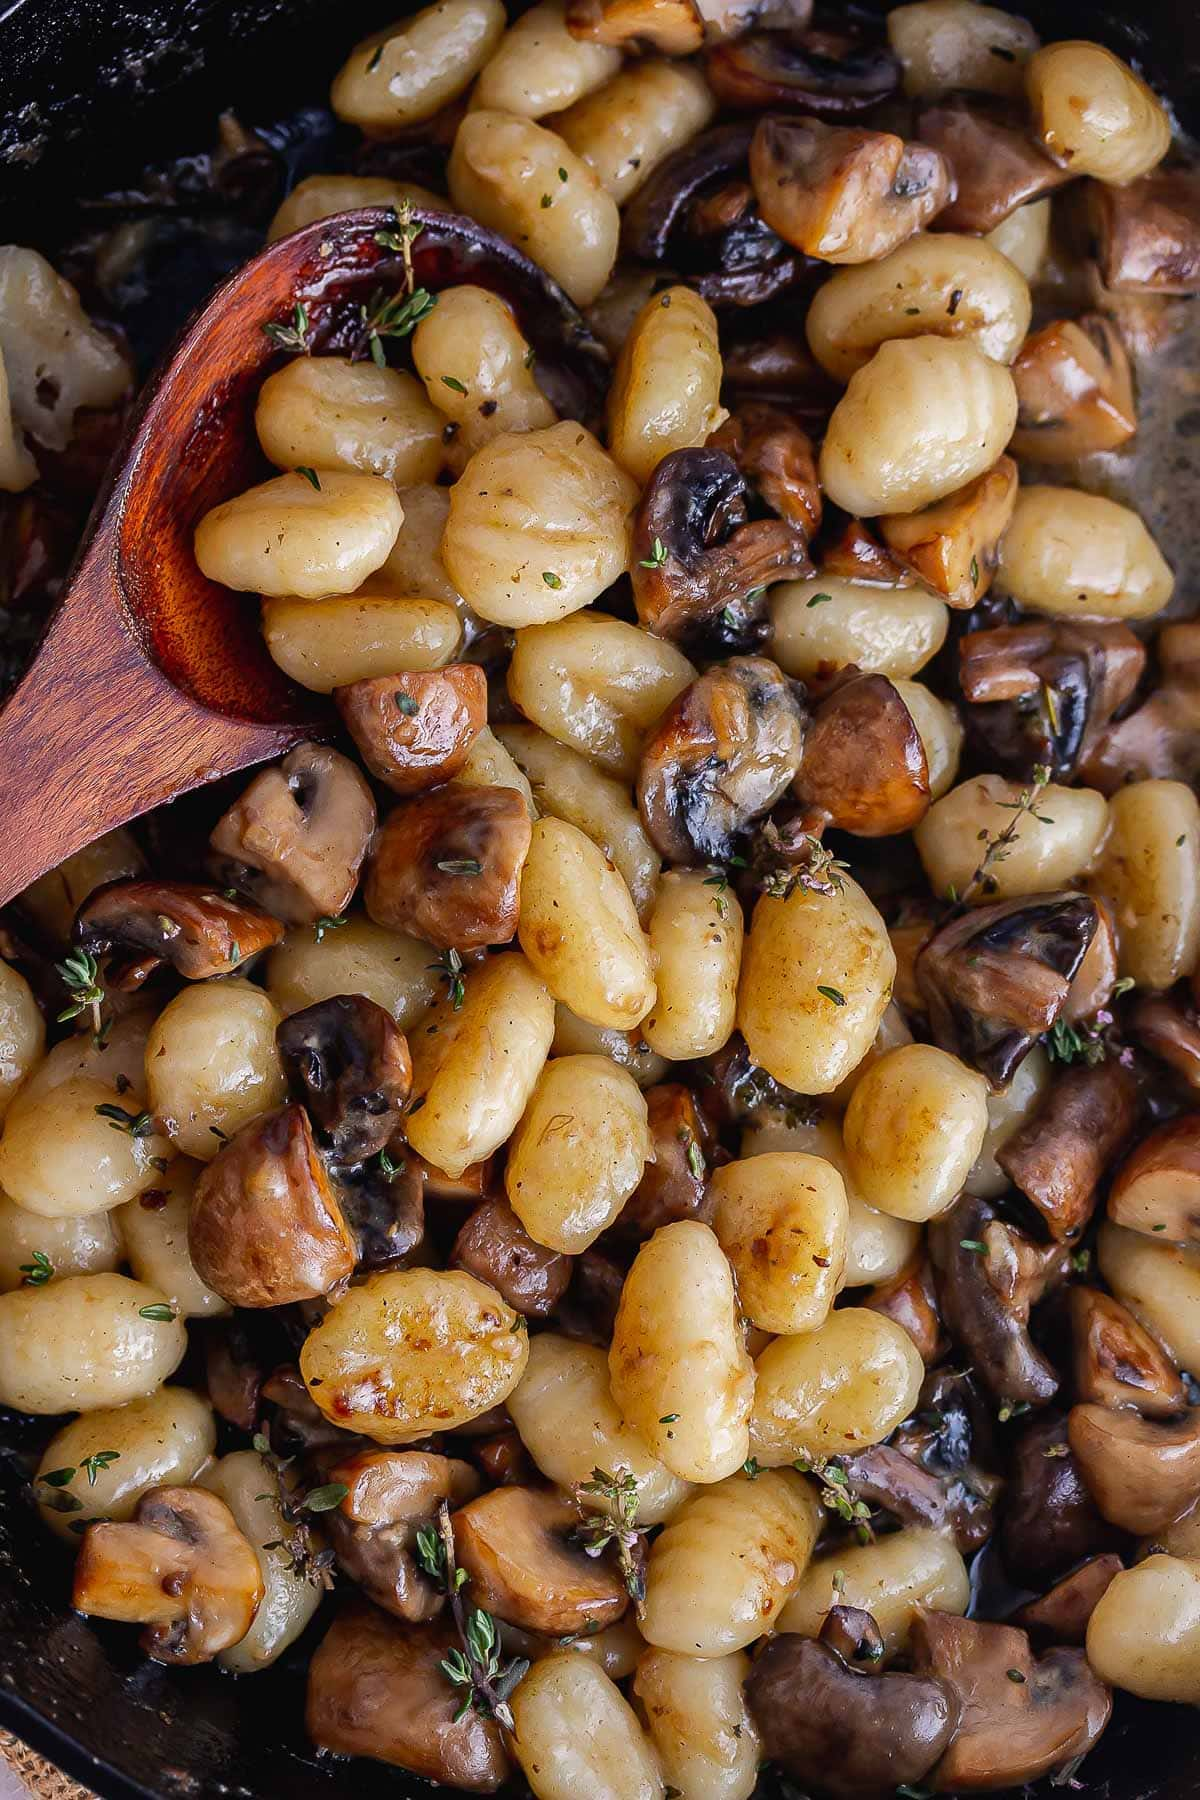 Overhead shot of gnocchi and mushrooms with a wooden spoon